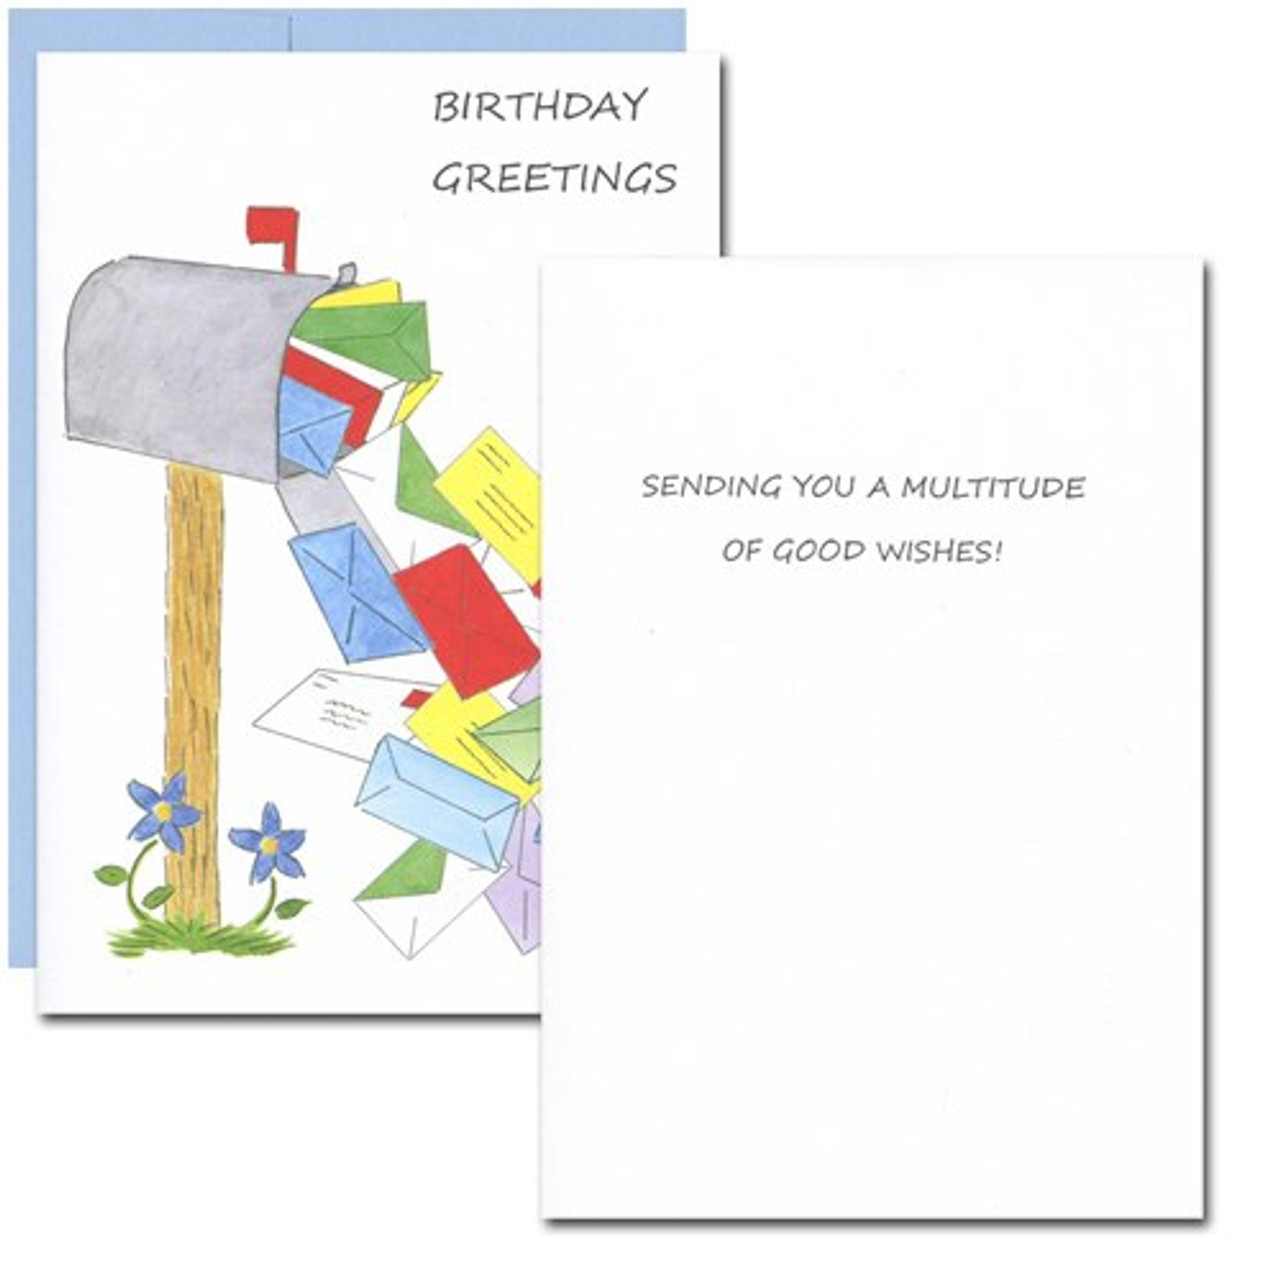 Mailbox Multitude Birthday Card. Inside reads: Sending you a multitude of good wishes